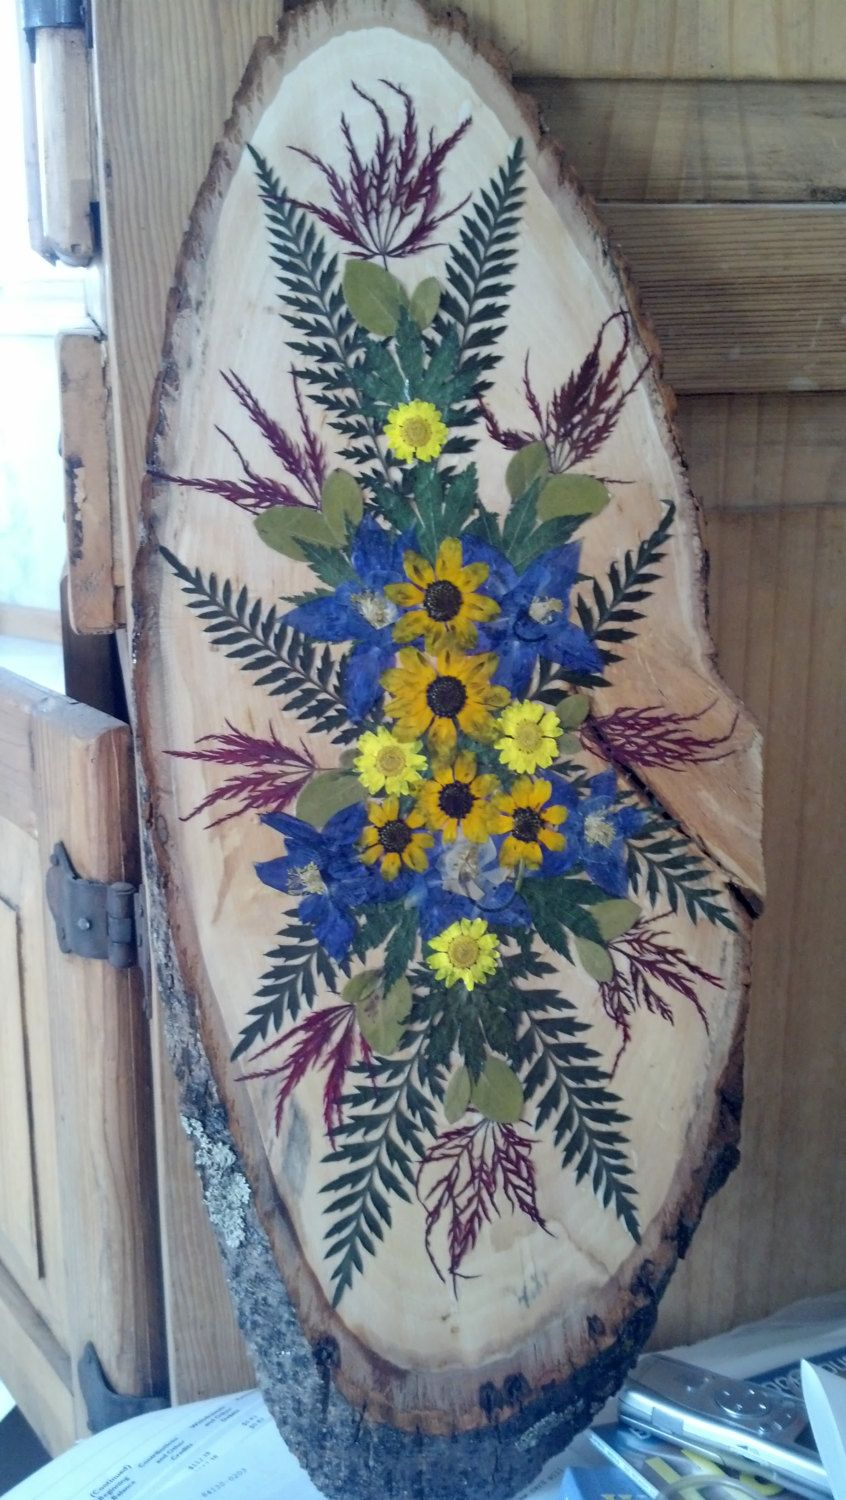 Colorado+Blue+Columbine+Collage+on+Rustic+by+FlowerFelicity,+$59.99